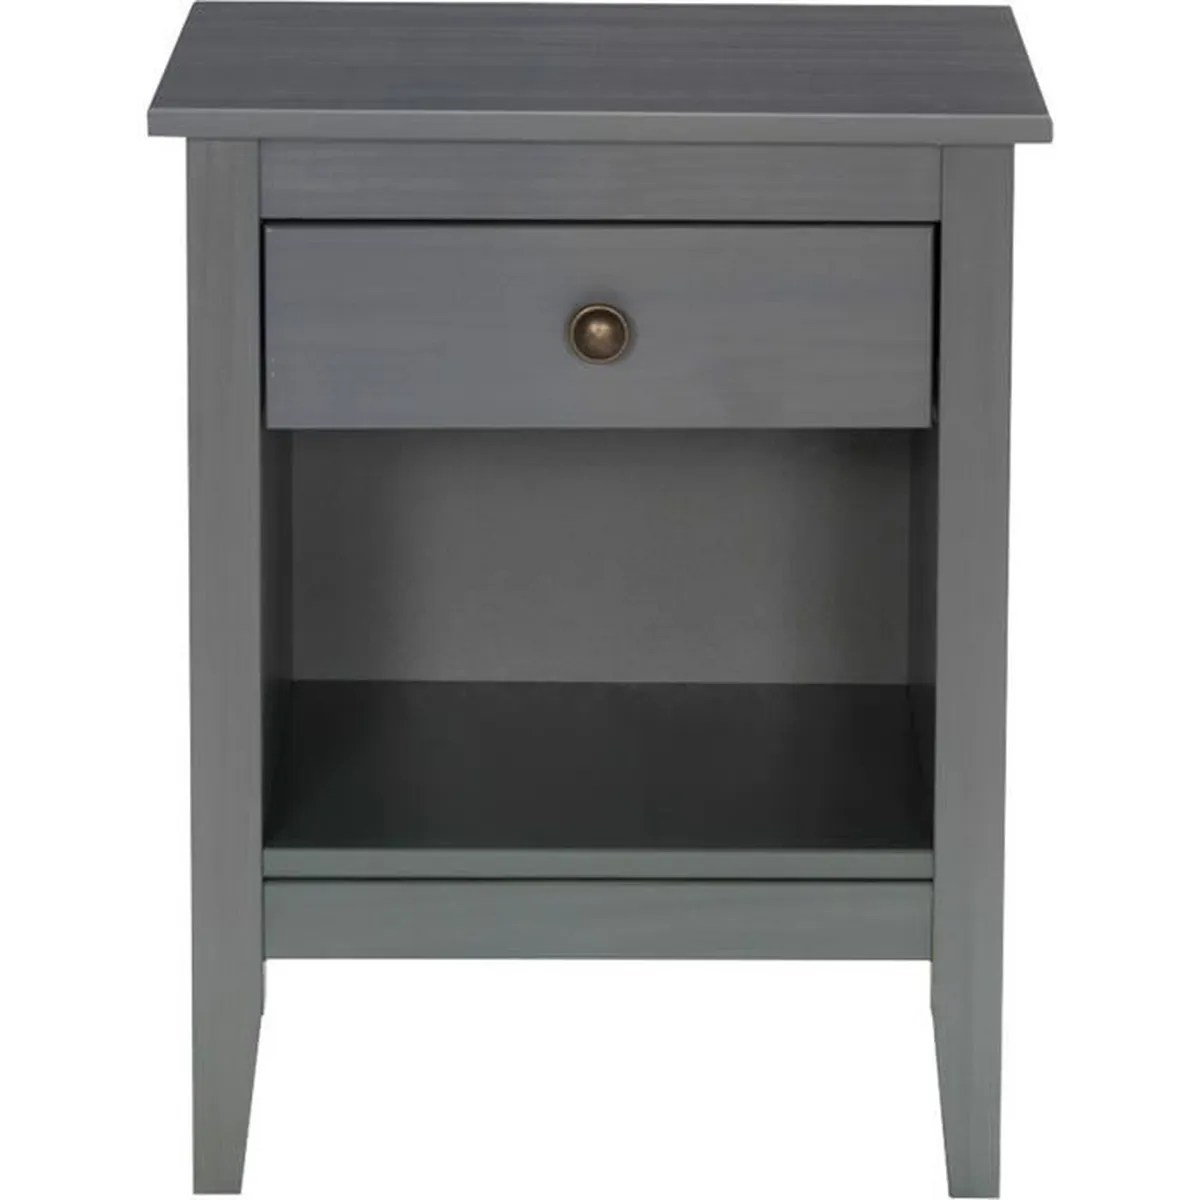 Table Chevet Metal Lison Table De Chevet Grise 1 Tiroir Et 1 Niche Gris